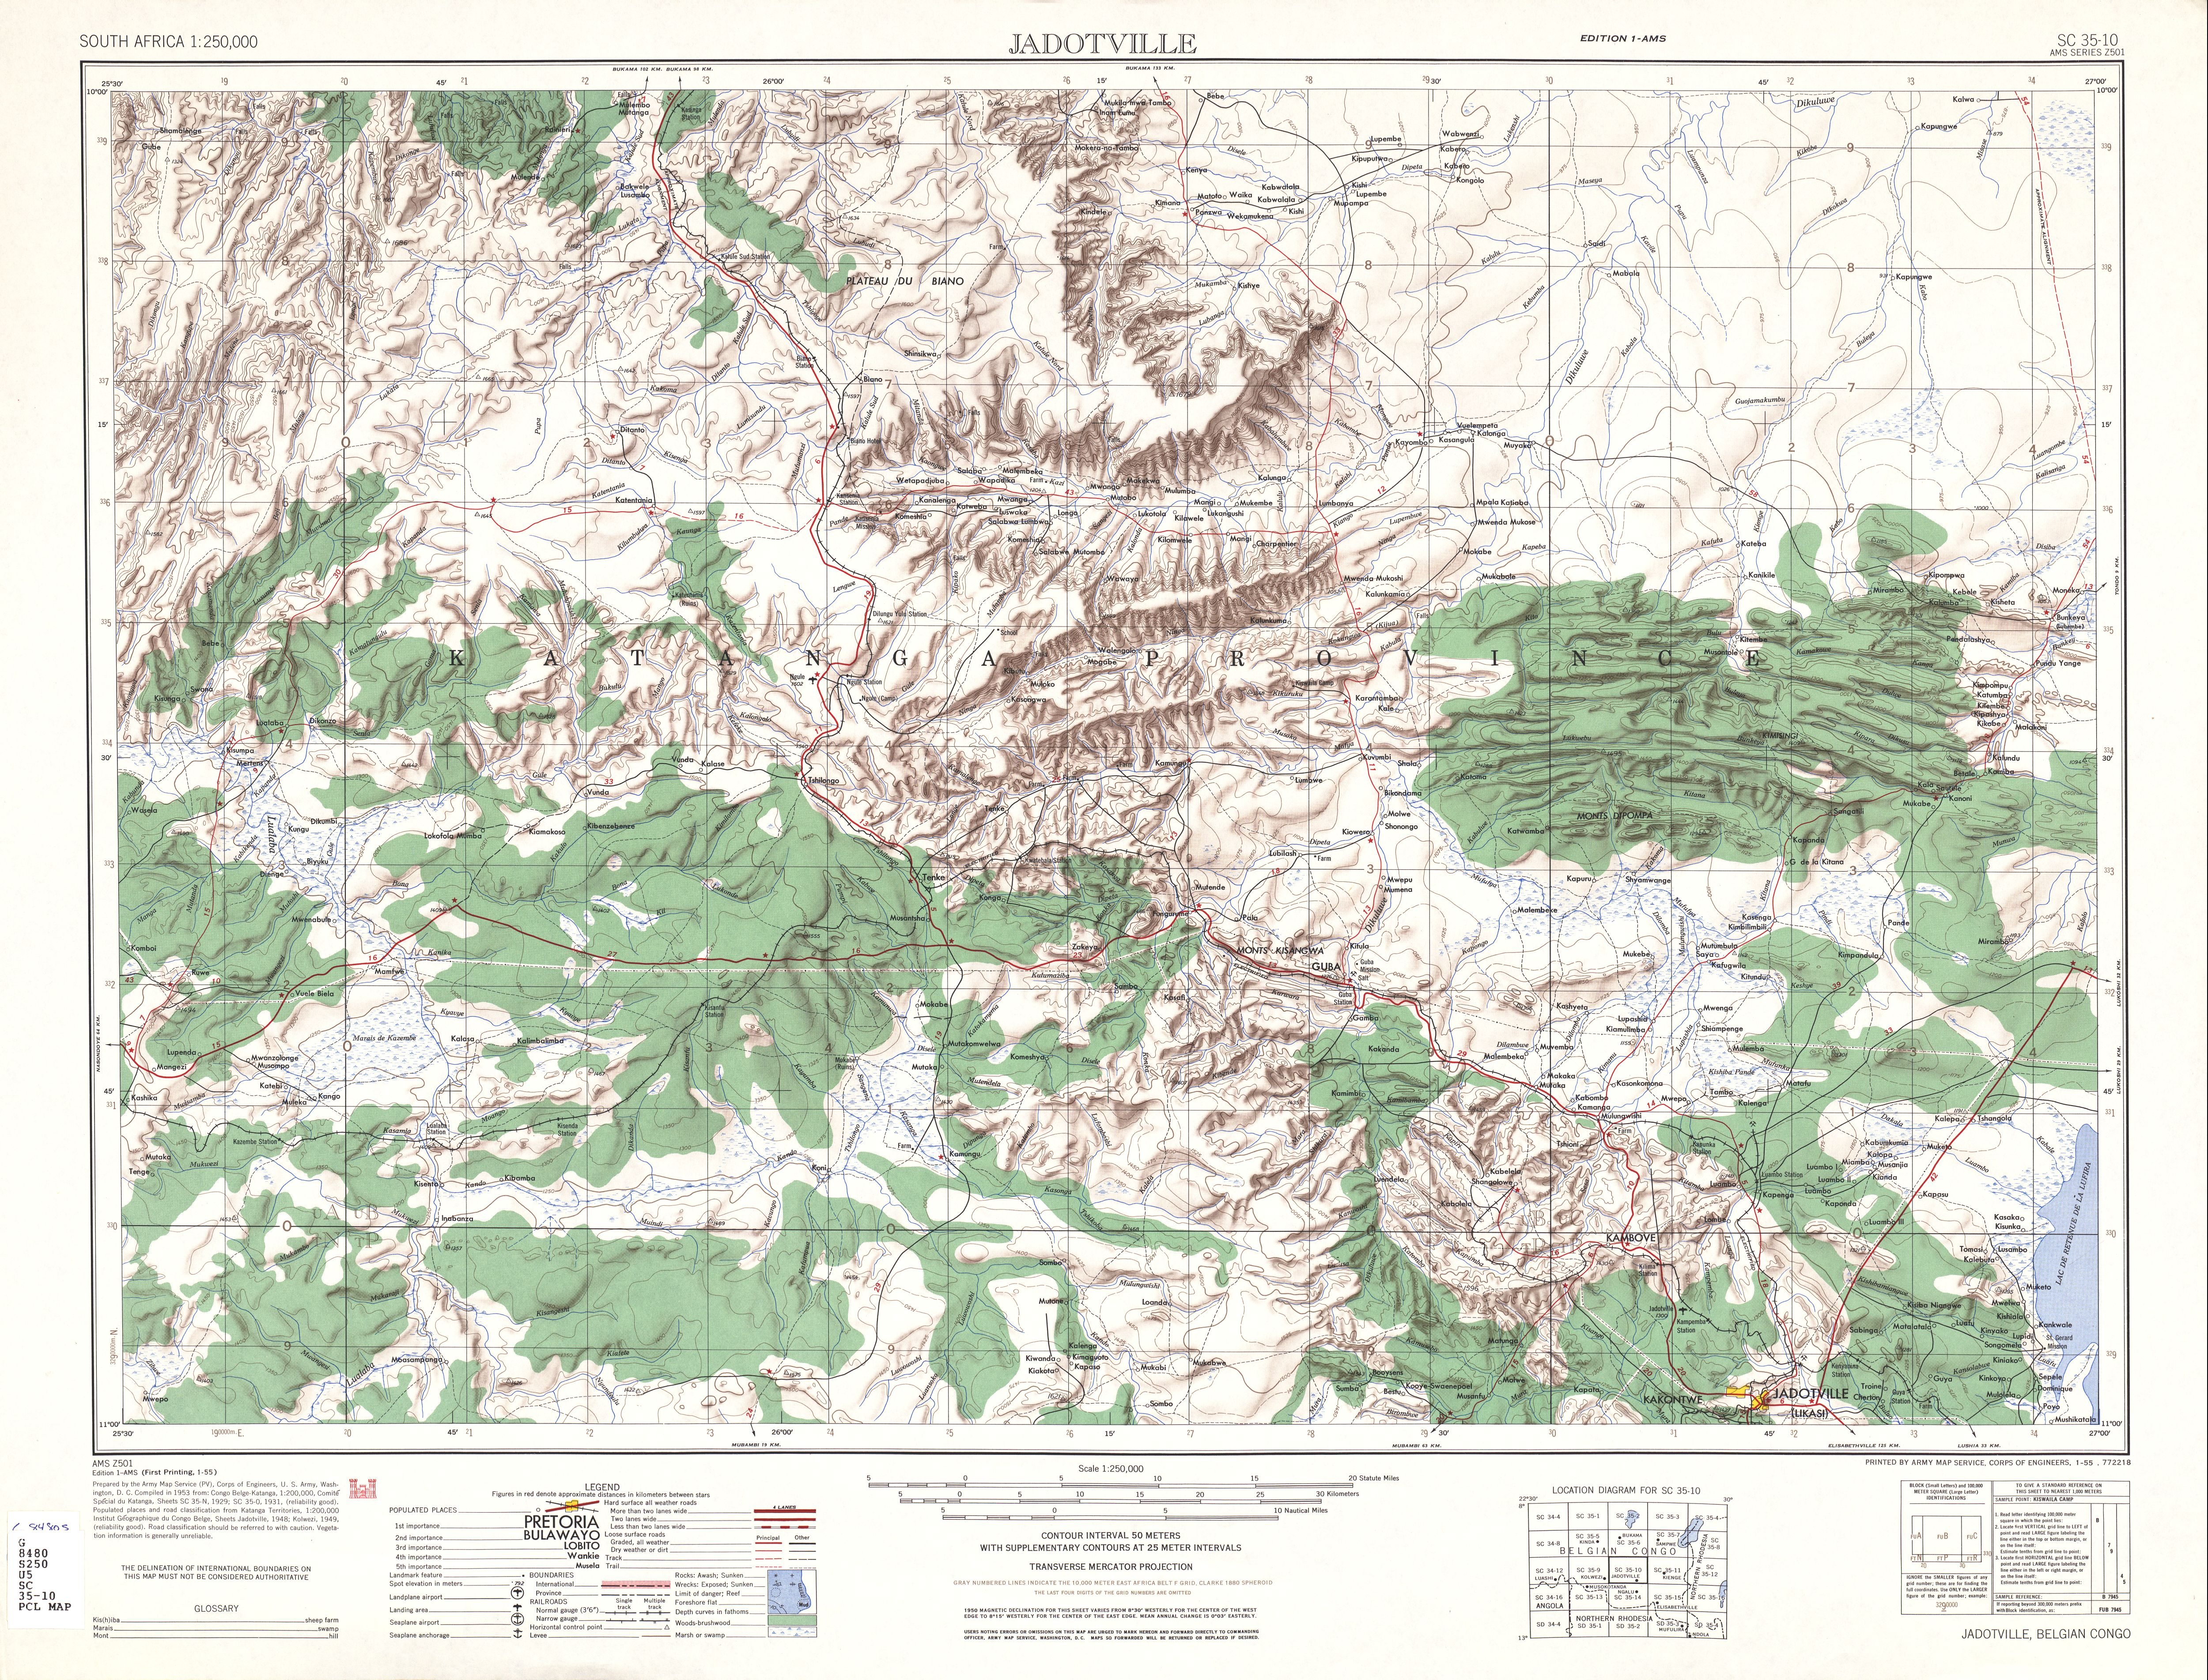 Jadotville Topographic Map Sheet, Southern Africa 1954